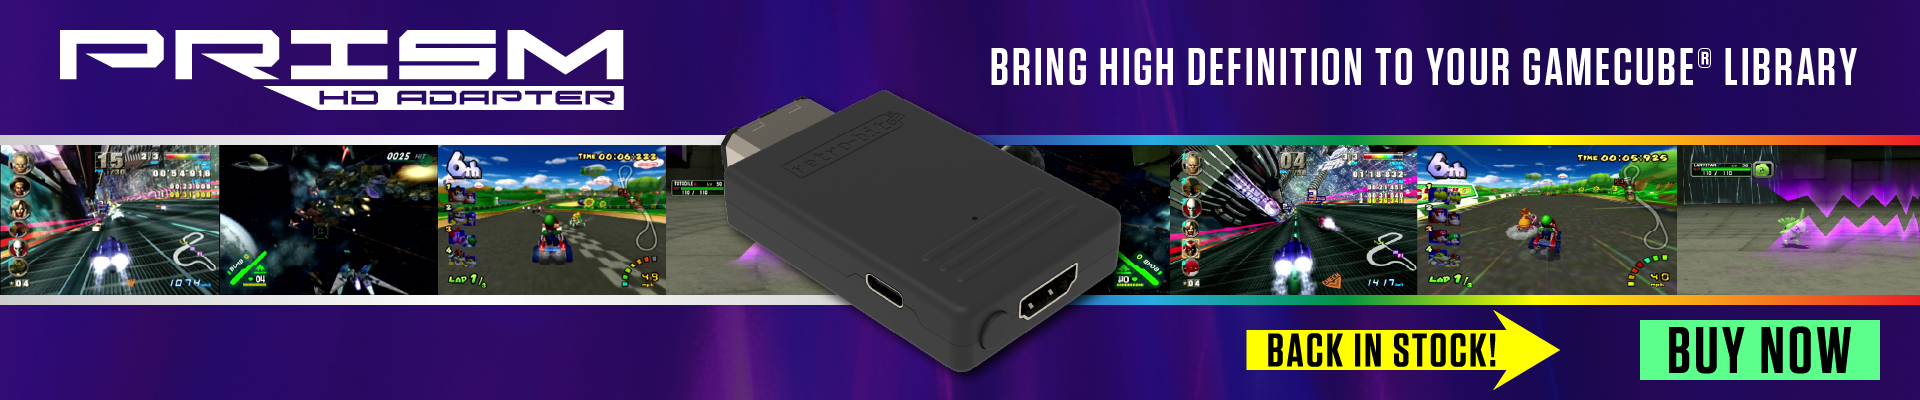 Prism HD Adapter for GCN - Back in Stock!